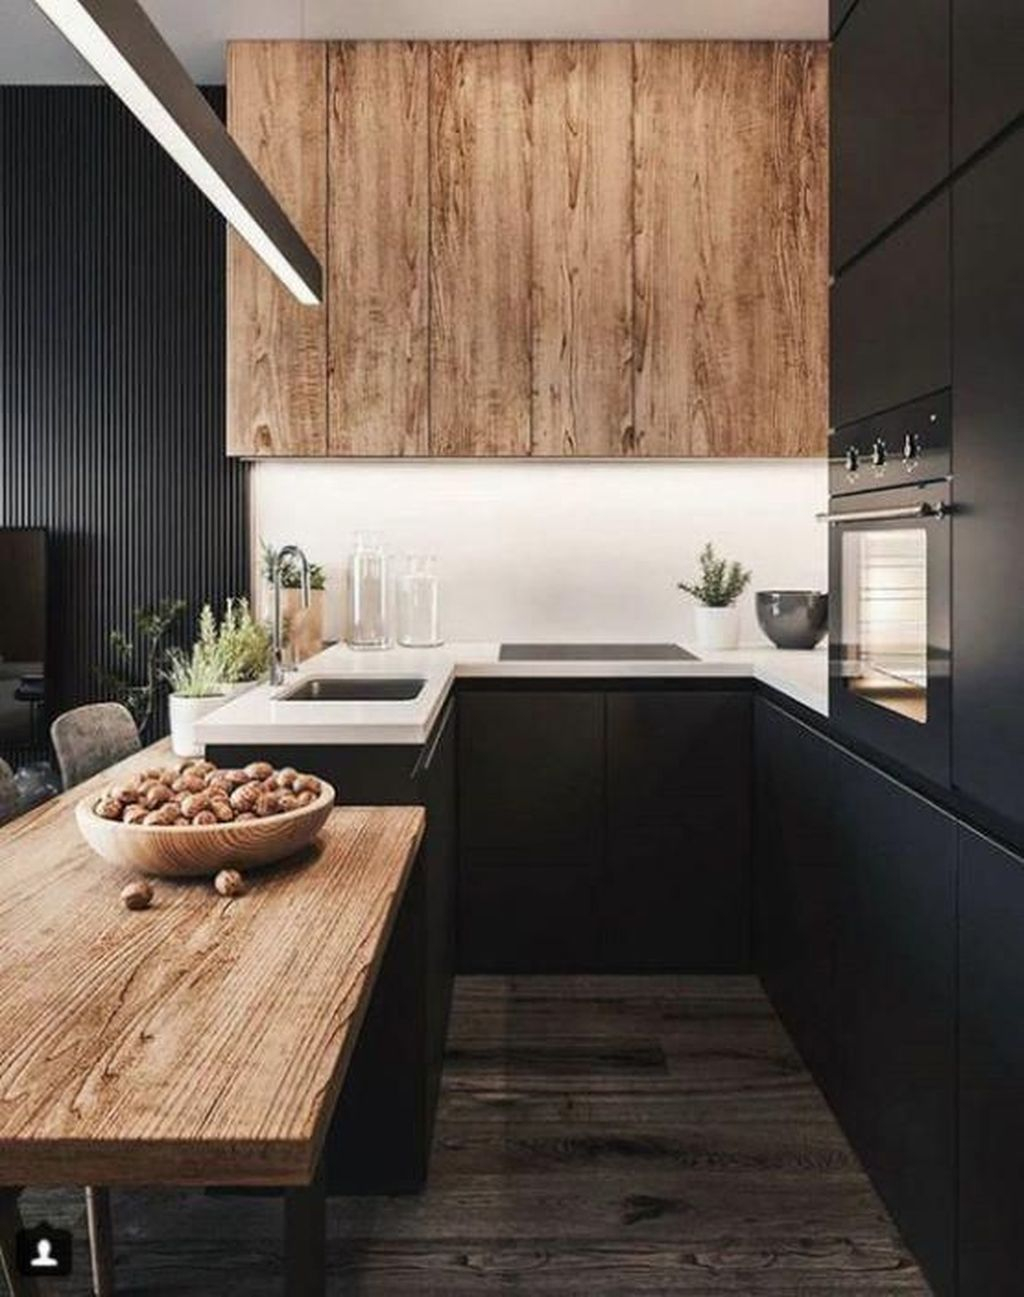 Awesome Kitchen Design Ideas That You Have To See It 06